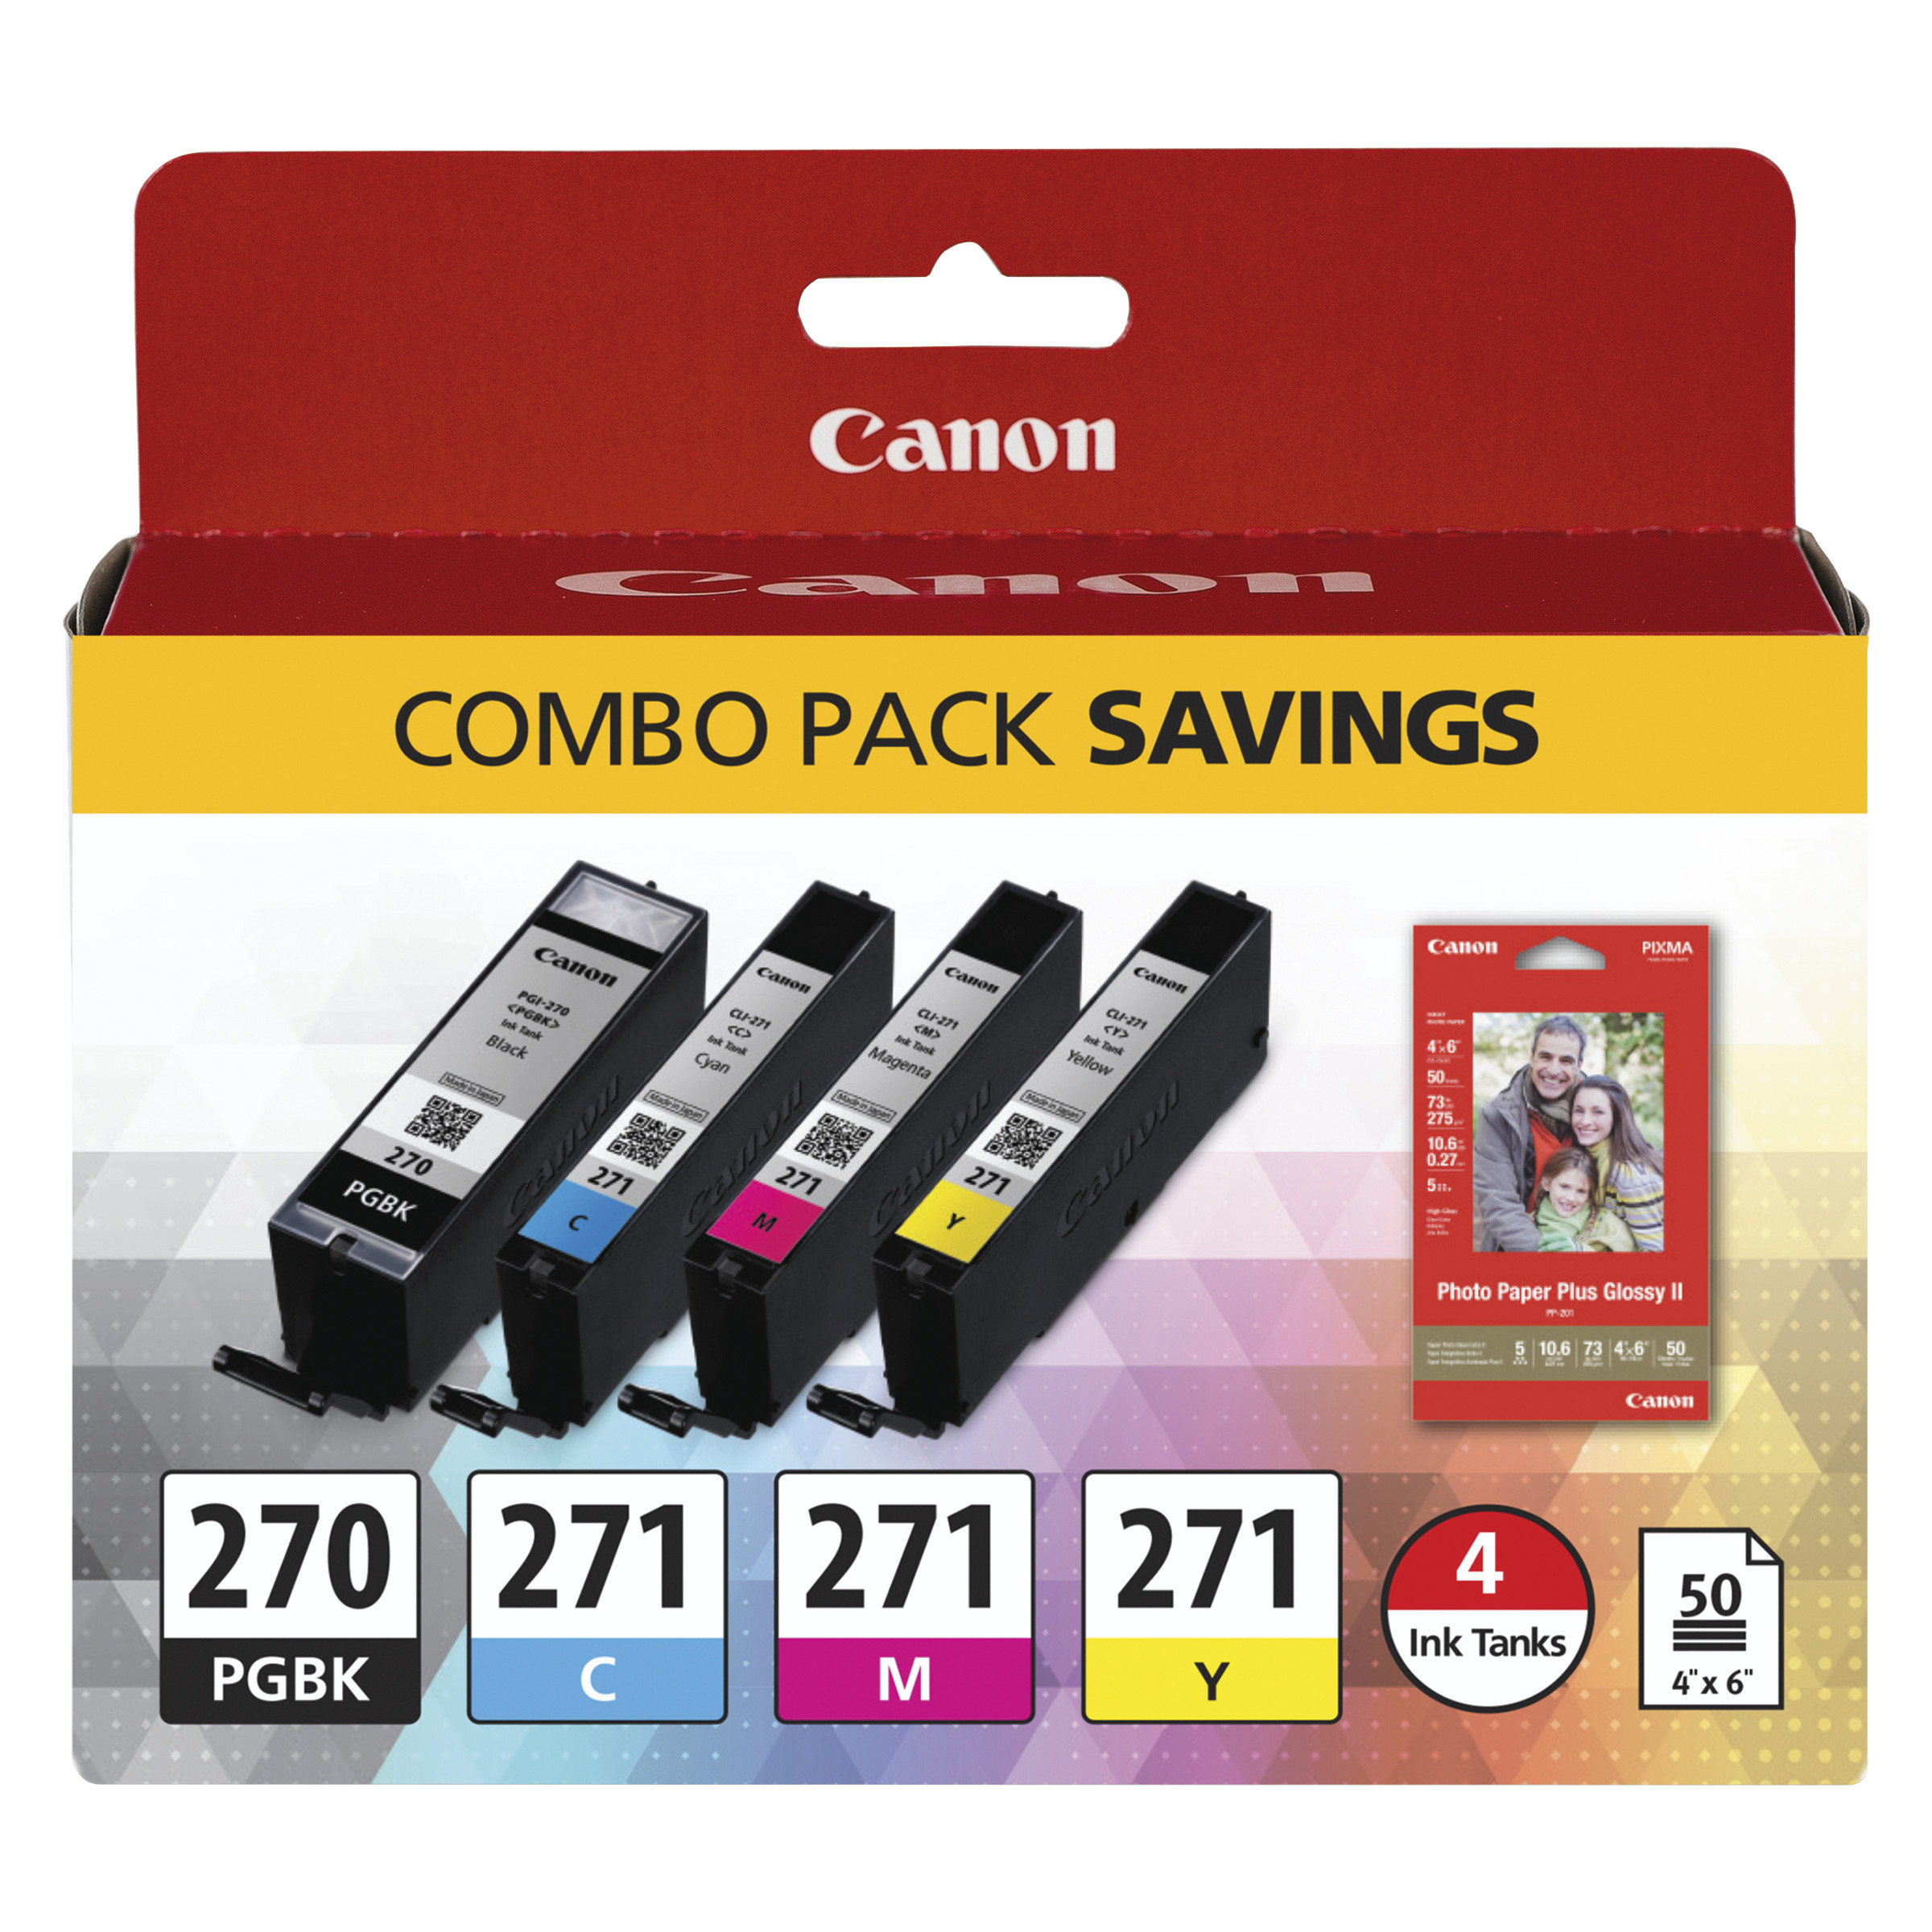 MS Imaging Supply Compatible Inkjet Cartridge Replacement for Canon CLI-271XLM Magenta, 4 Pack